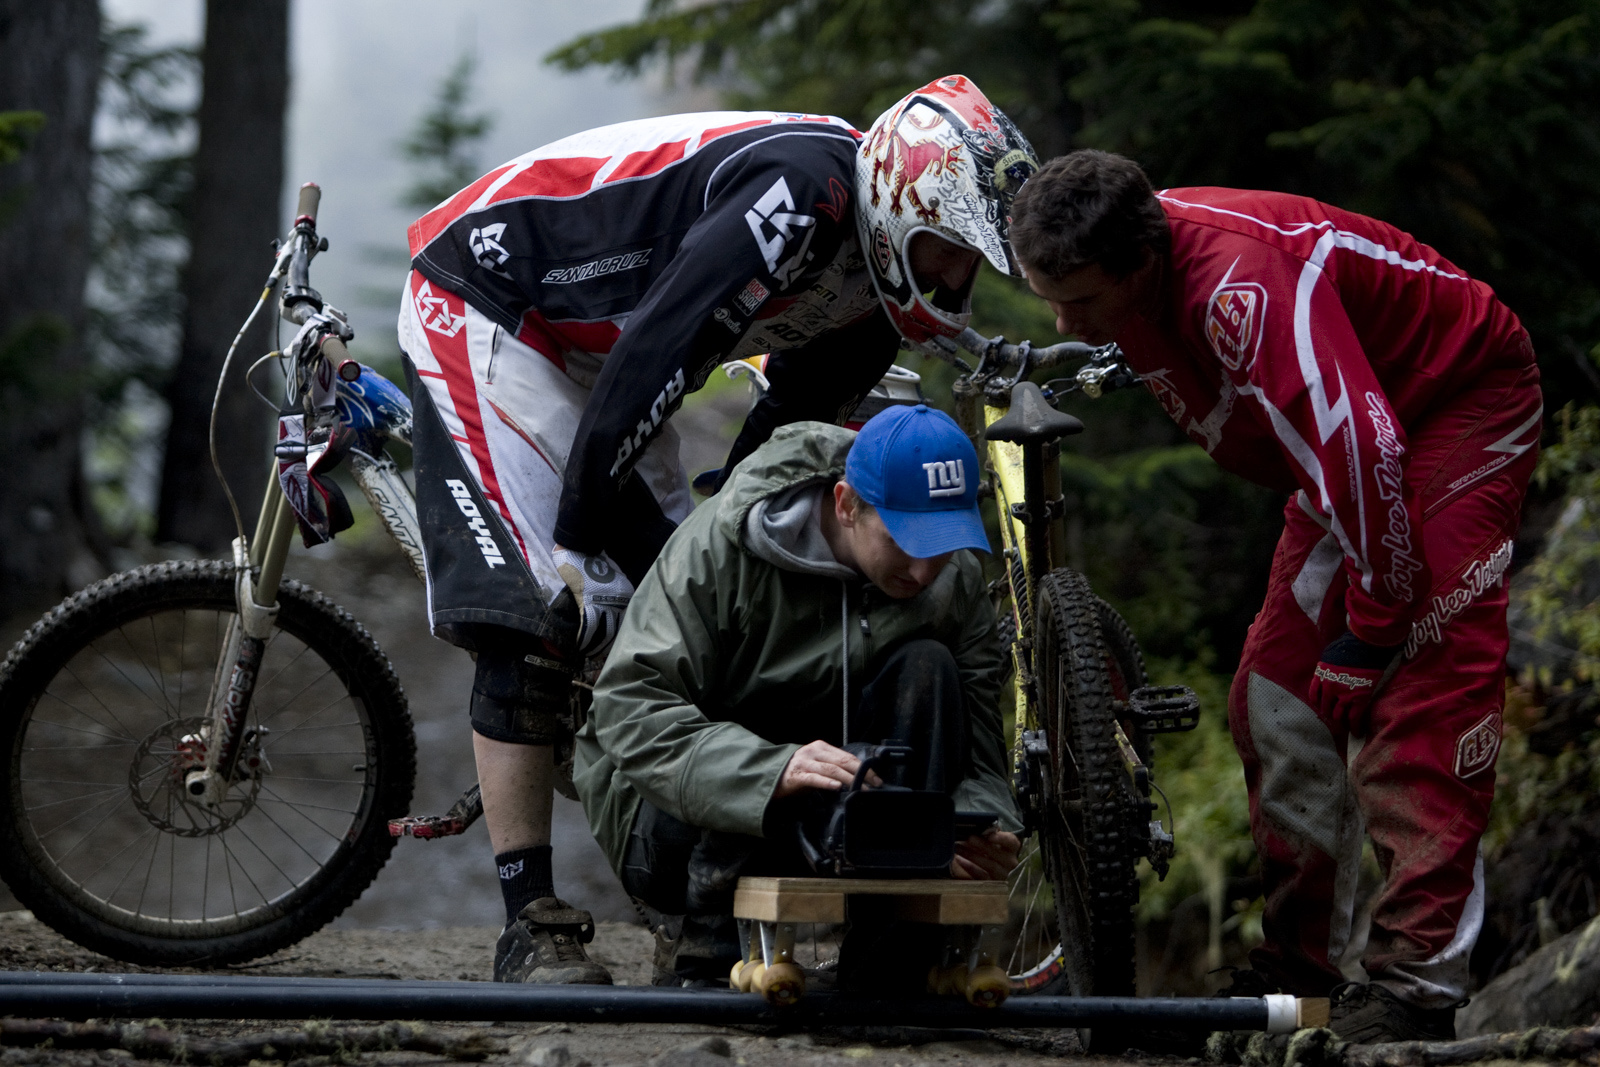 Checking the footage in Whistler